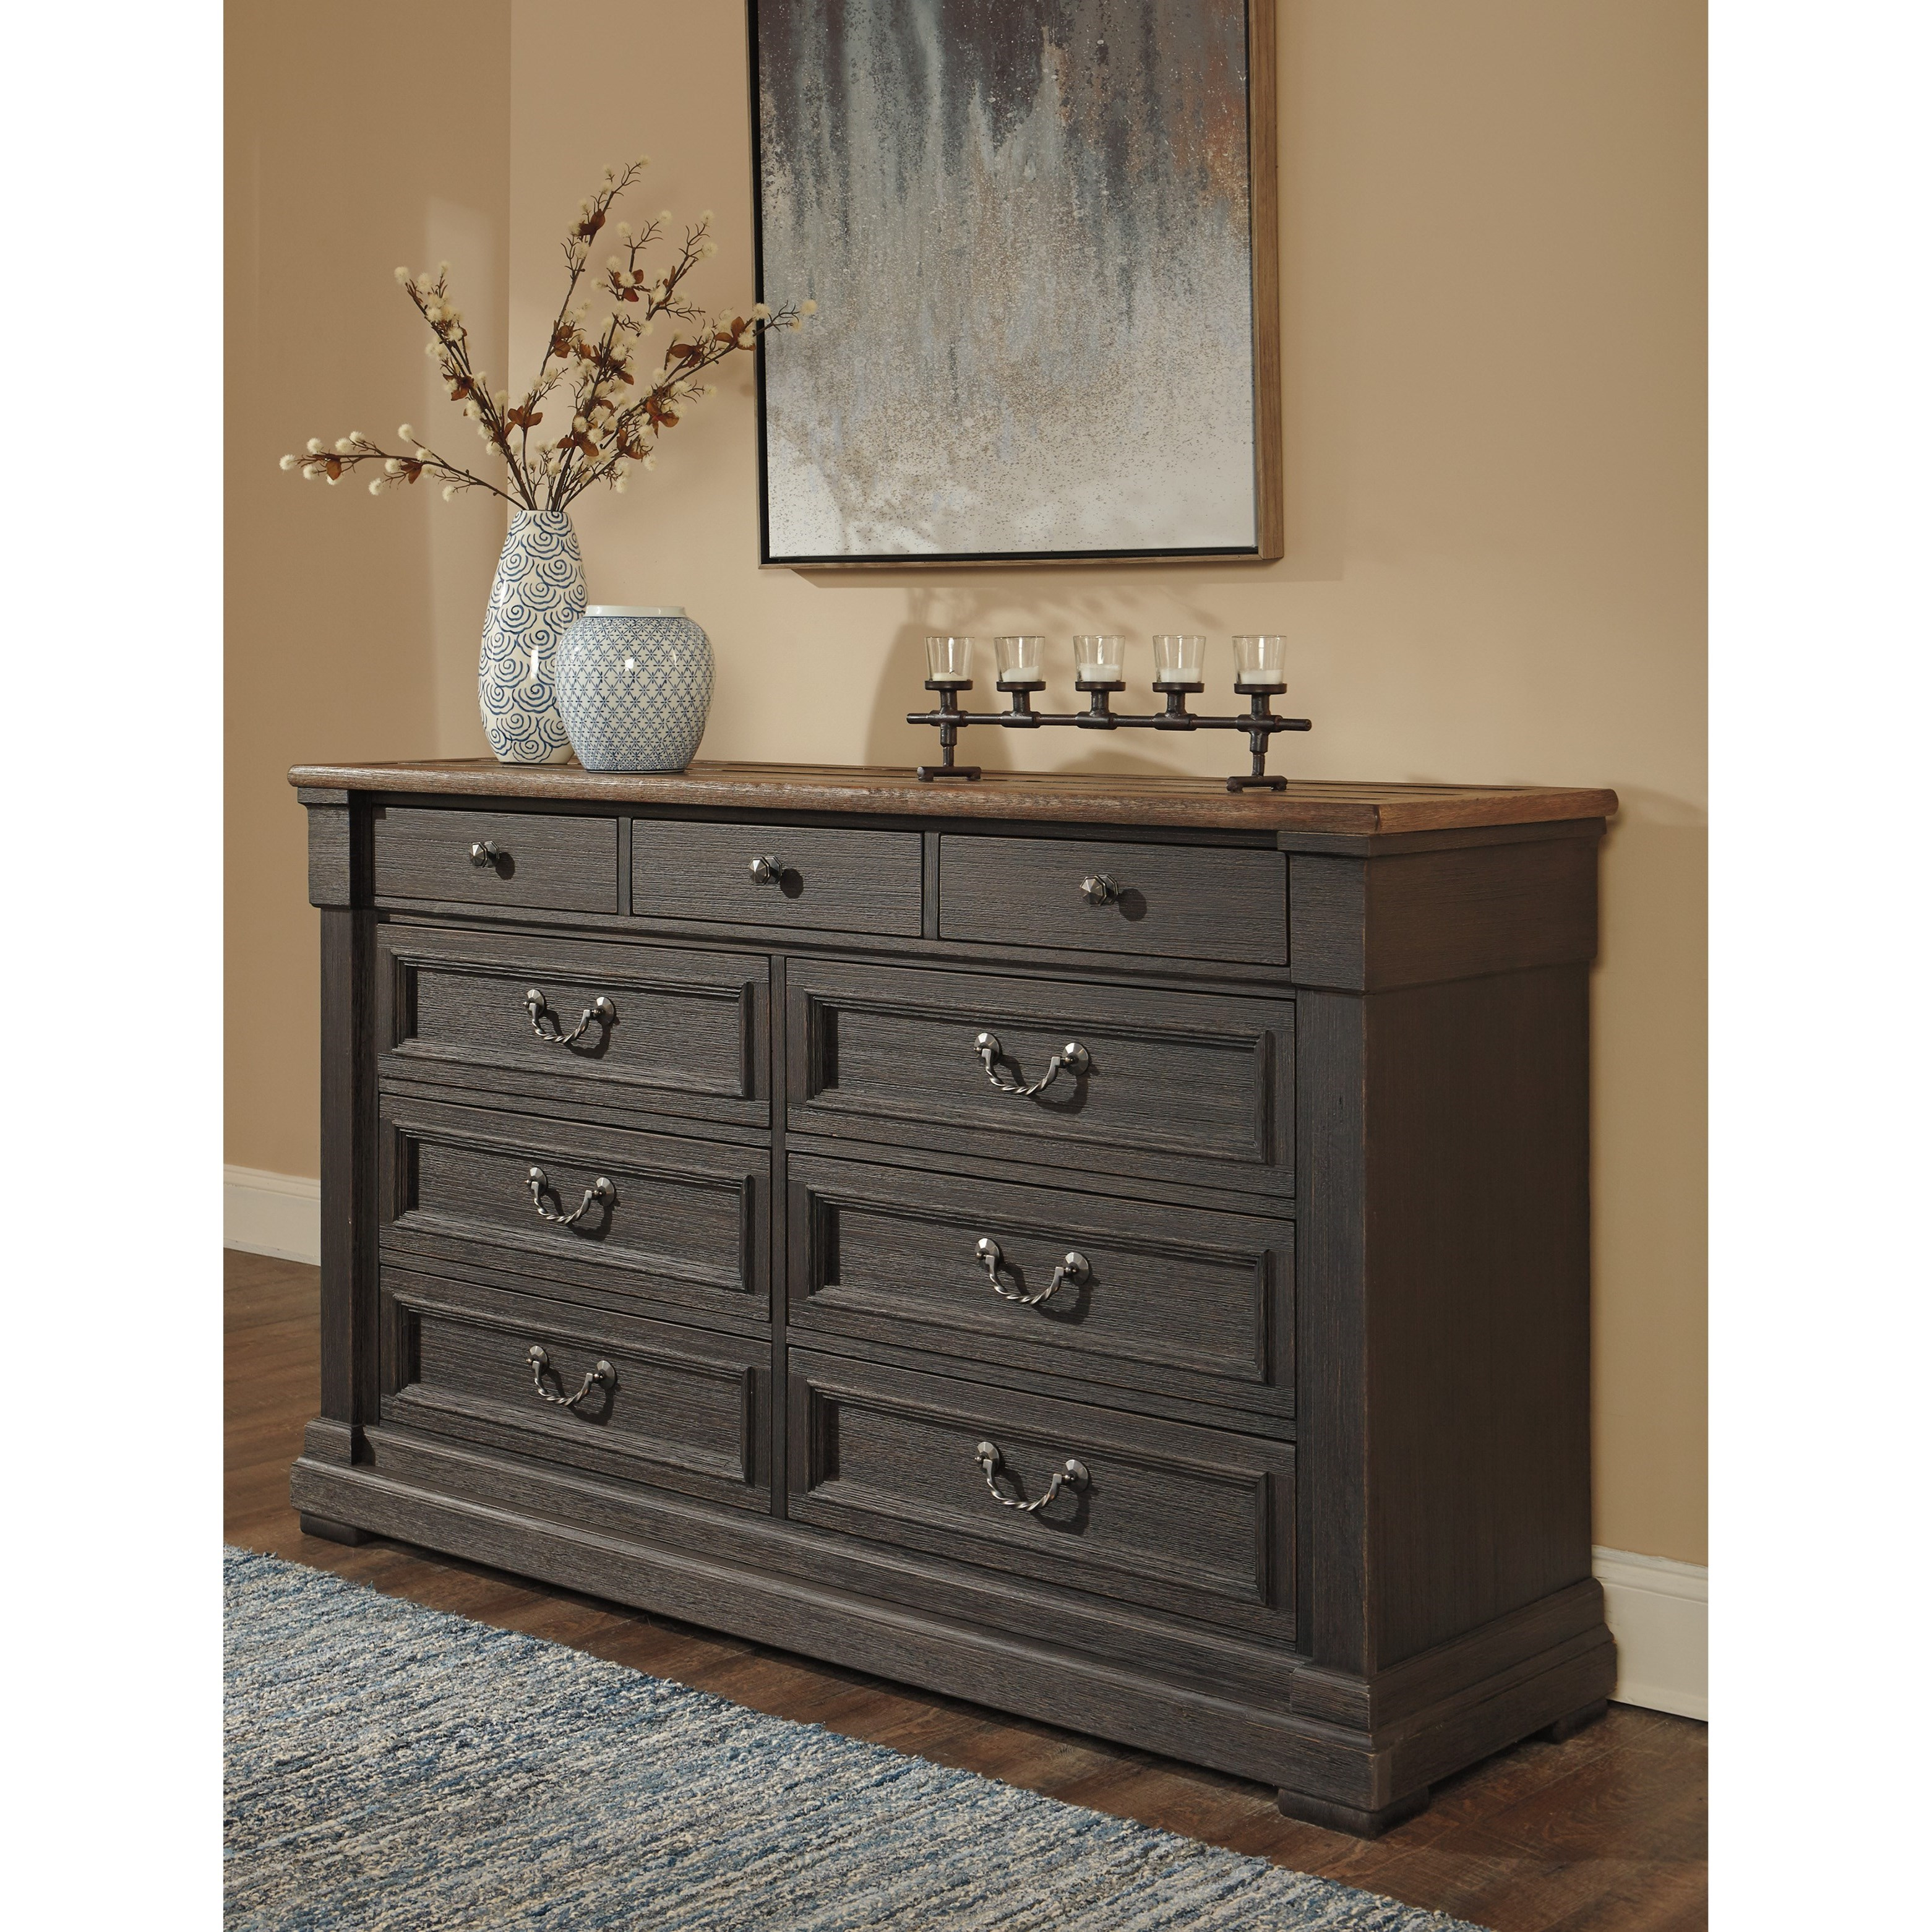 Signature Design By Ashley Tyler Creek Relaxed Vintage Two Tone Dresser Miskelly Furniture